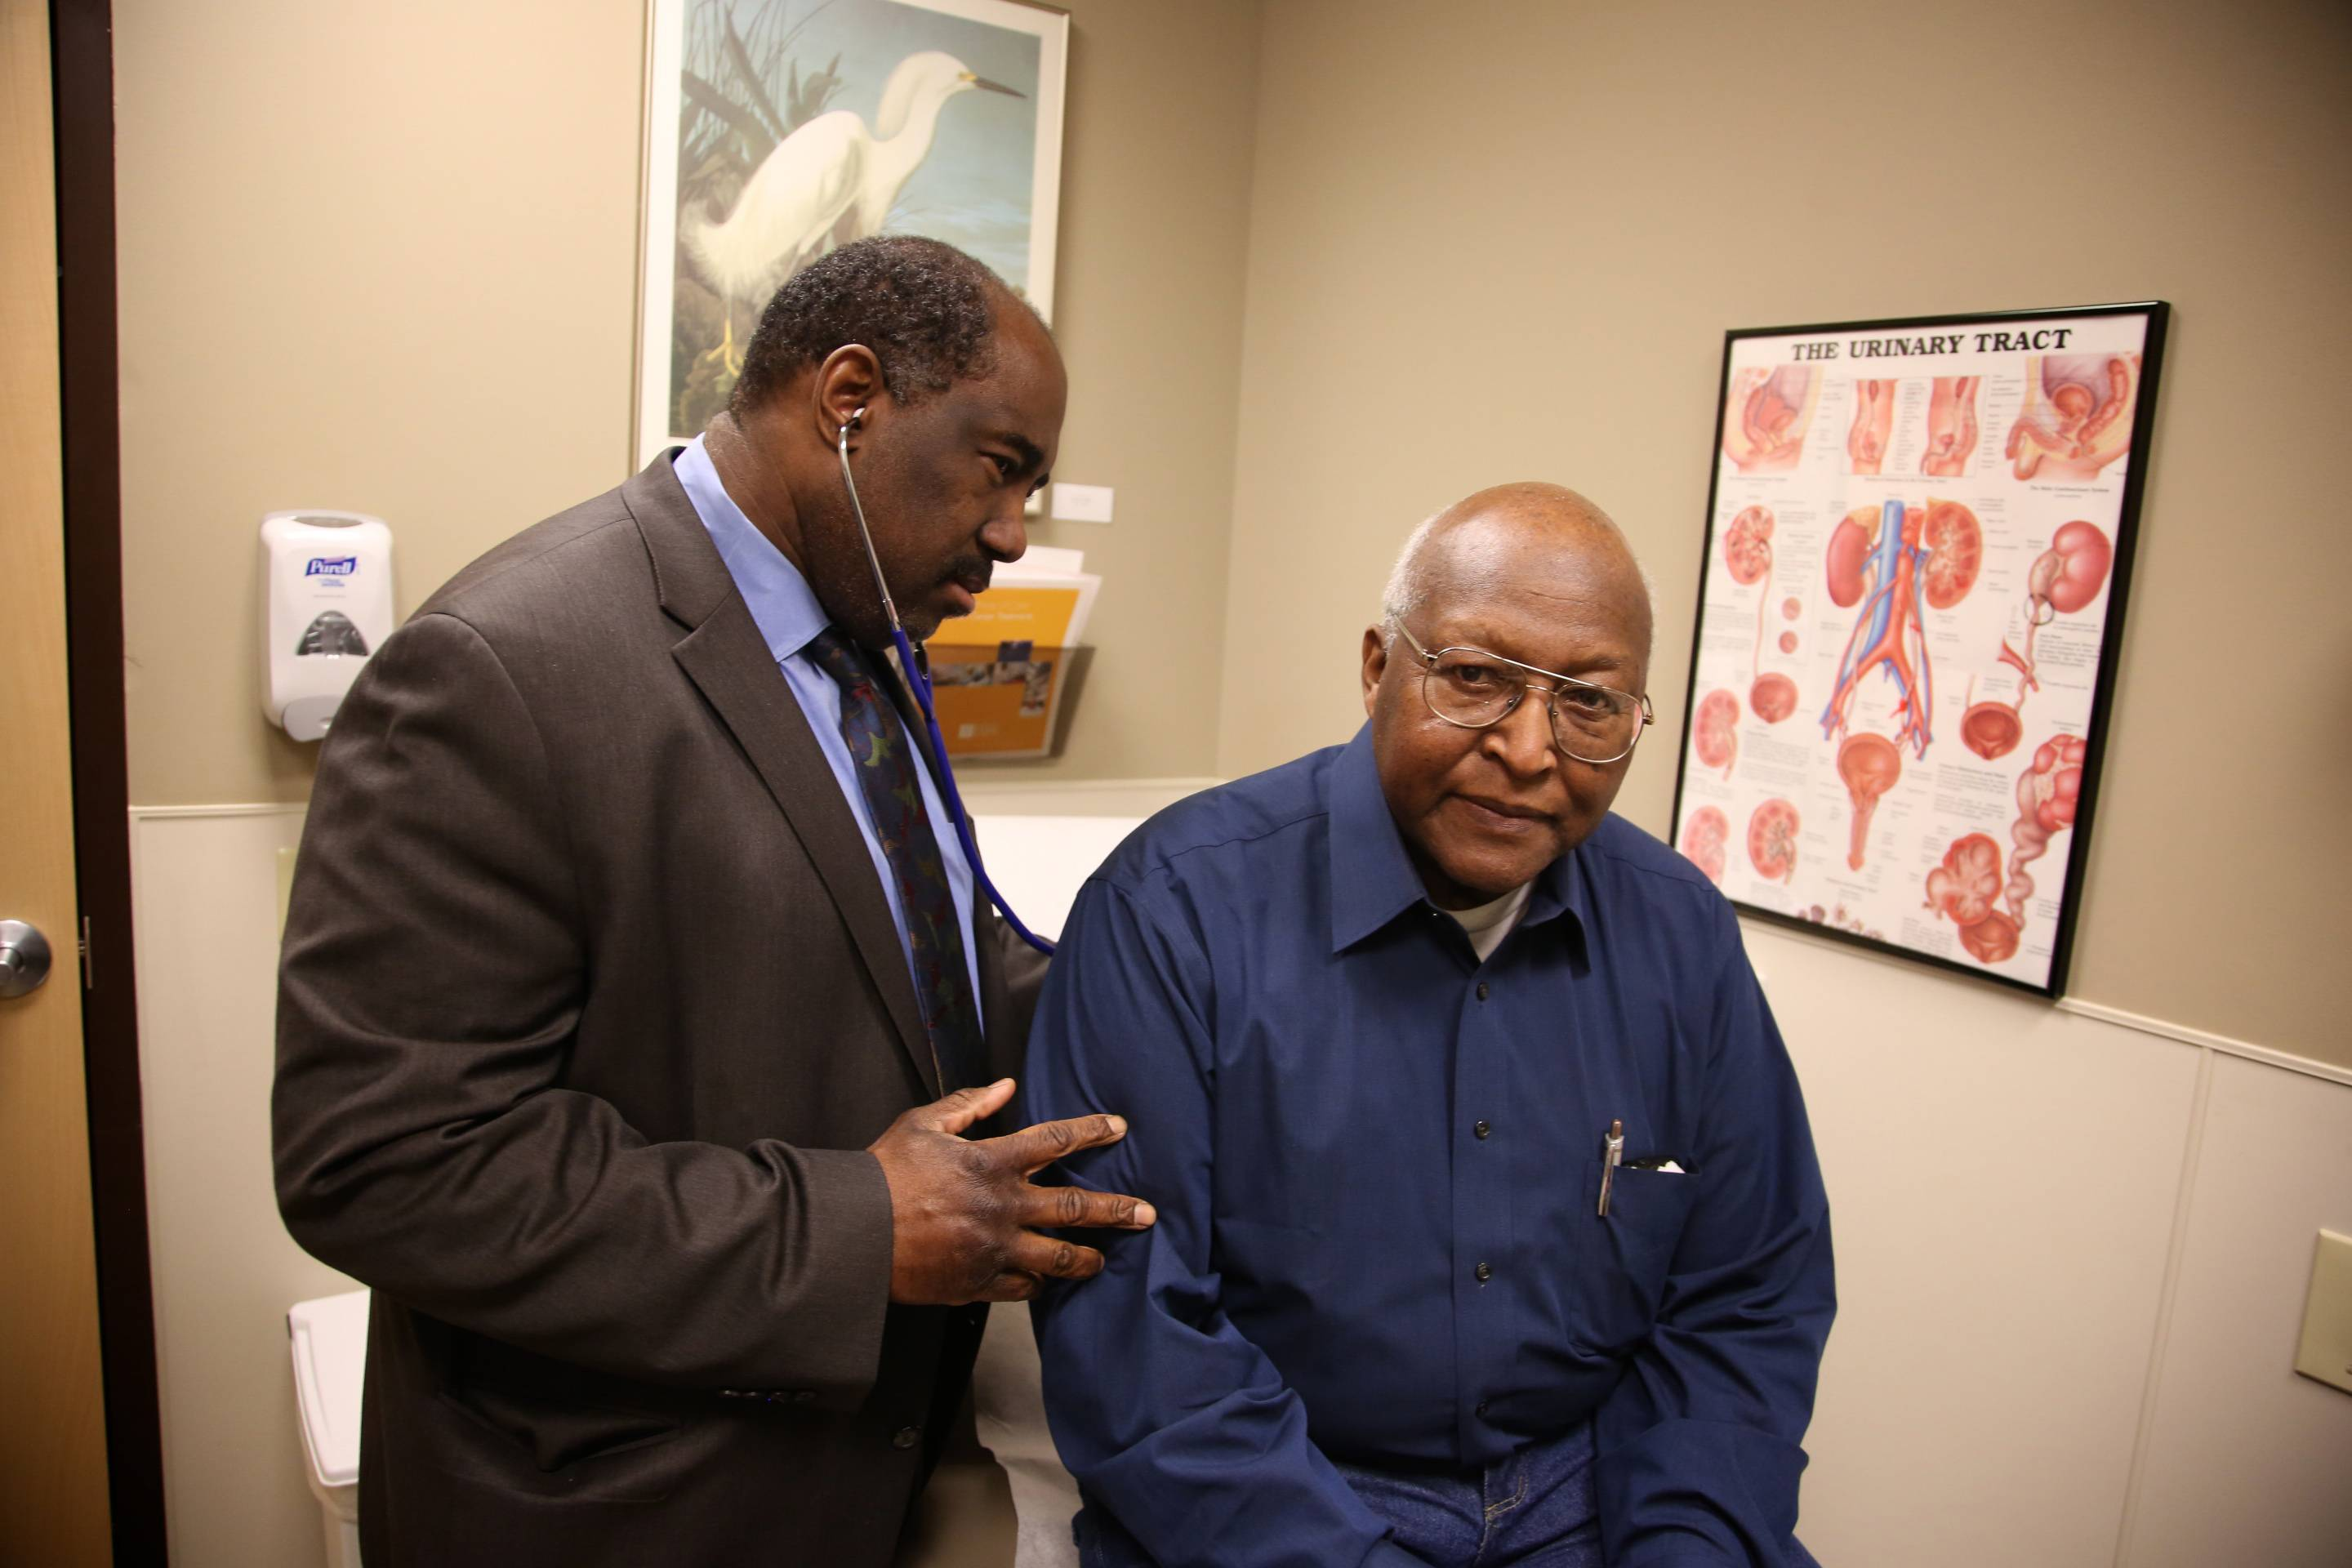 Dr. Willie Underwood, a urologic oncologist at Roswell Park Cancer Institute, examining patient Richard Waldrop at the Roswell Park Cancer Institute, in Buffalo, N.Y.